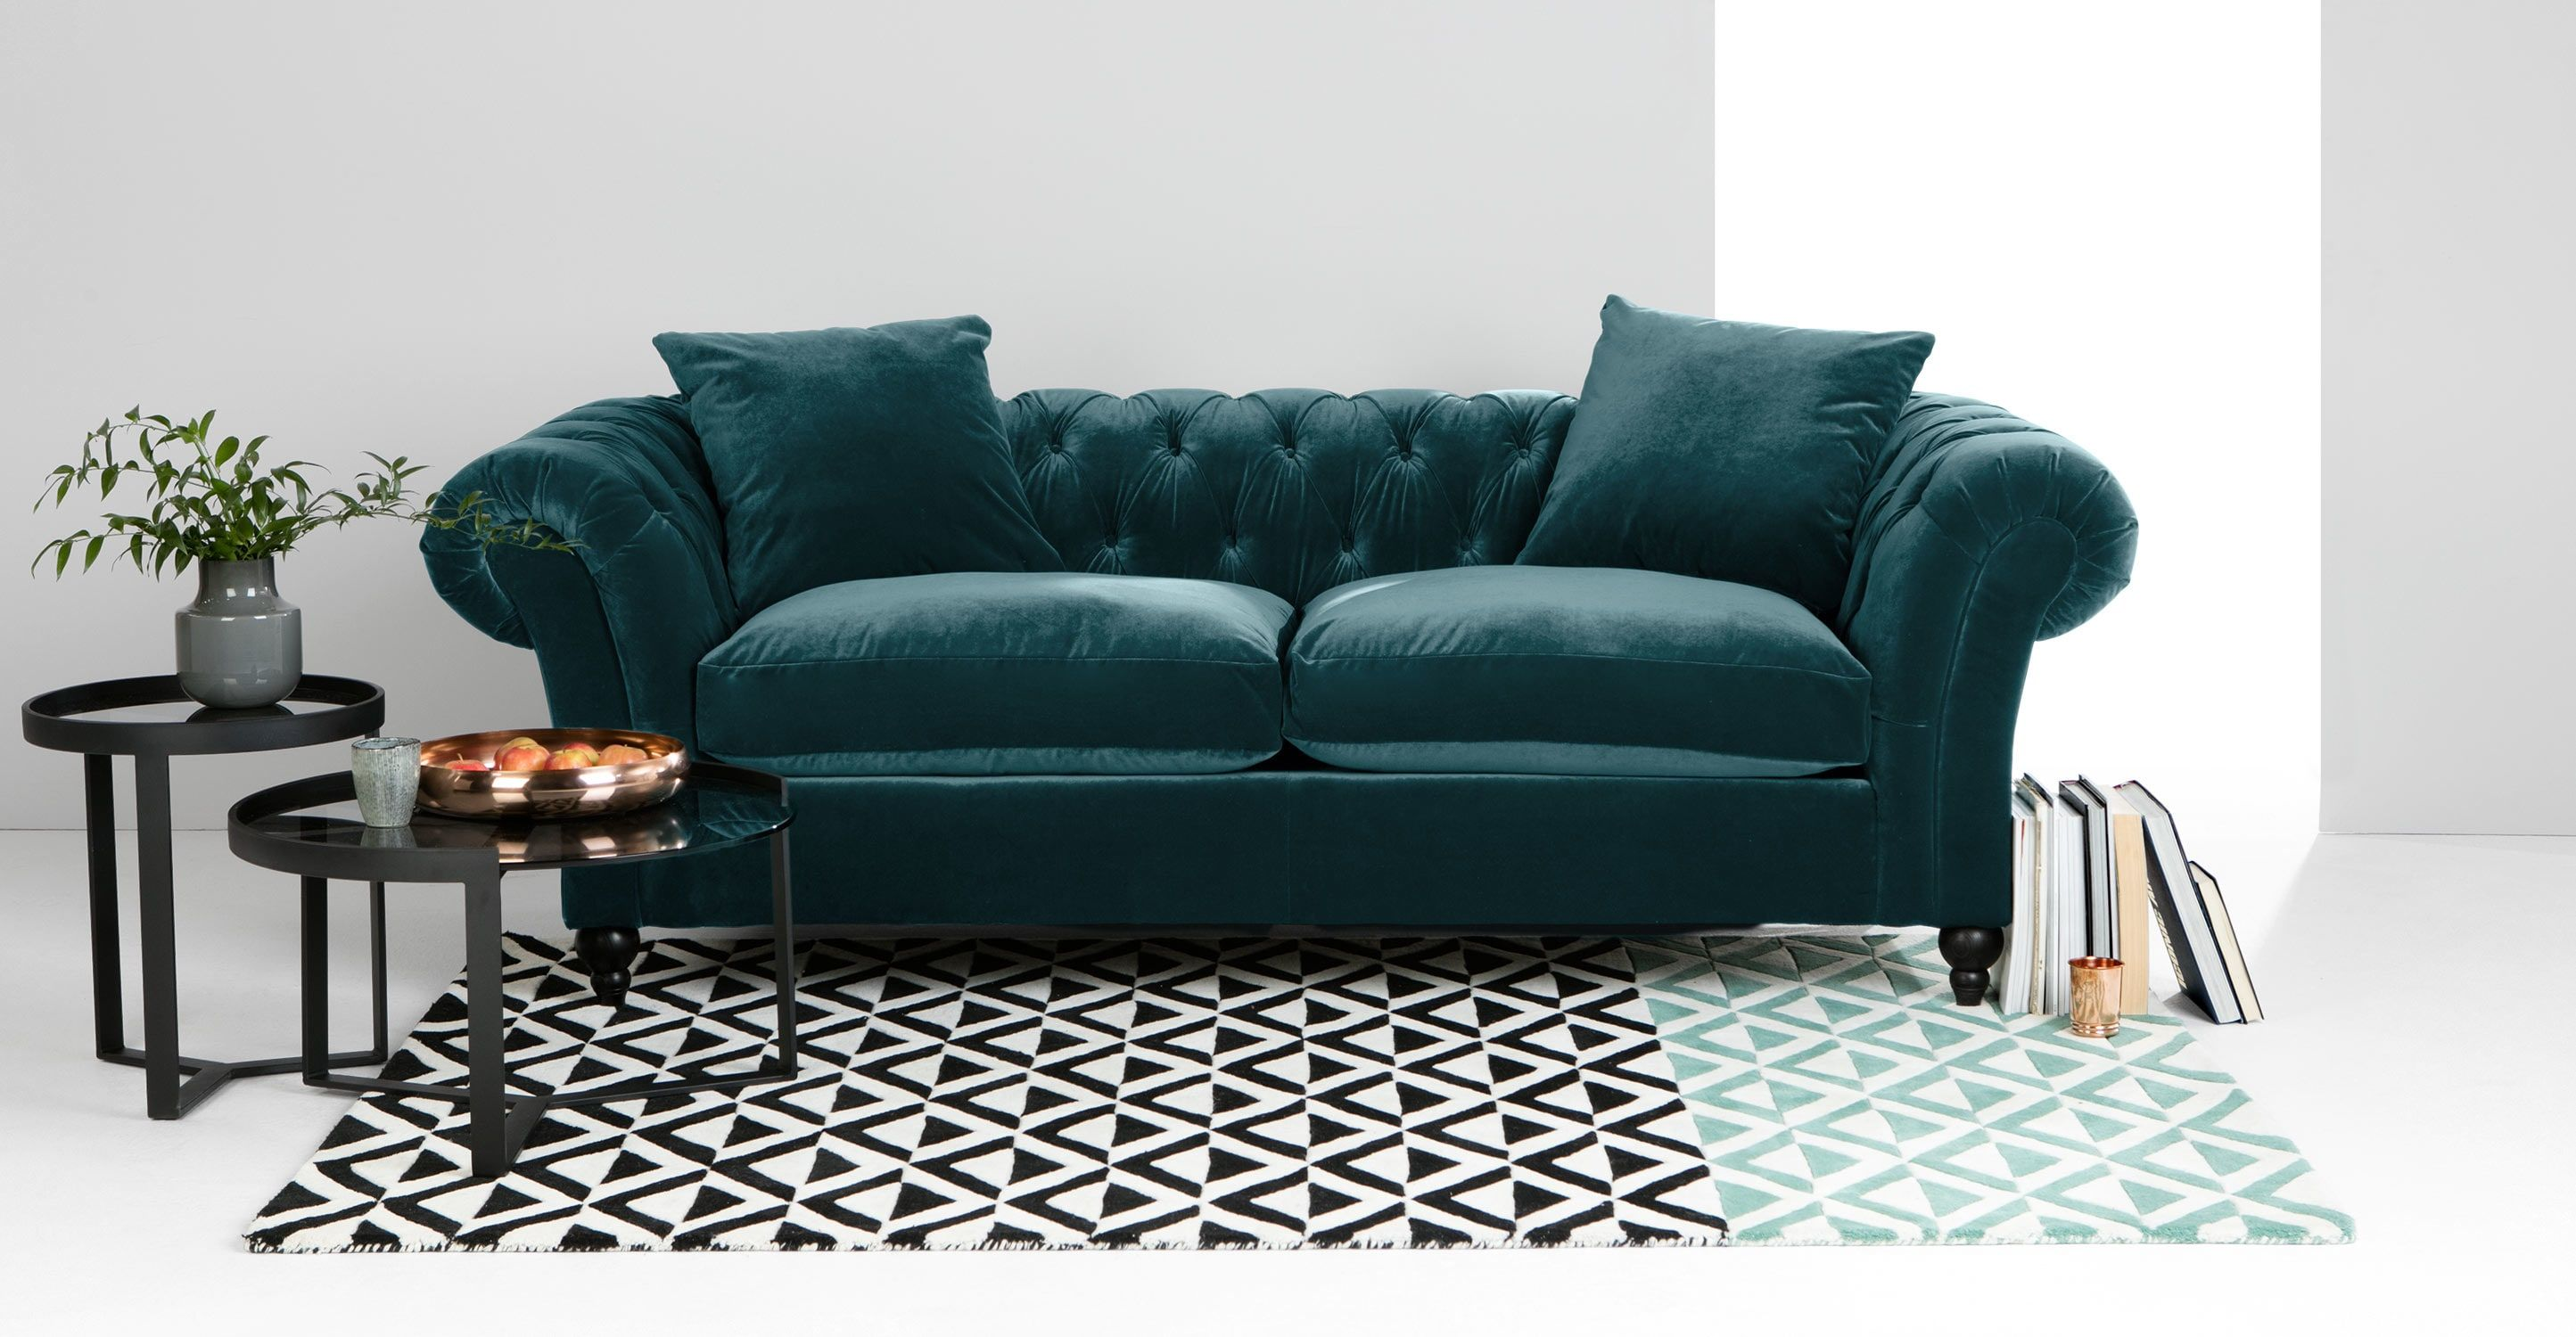 Samt sofa  Bardot 3-Sitzer Chesterfield Sofa, Samt in Ozeanblau | Graphic ...